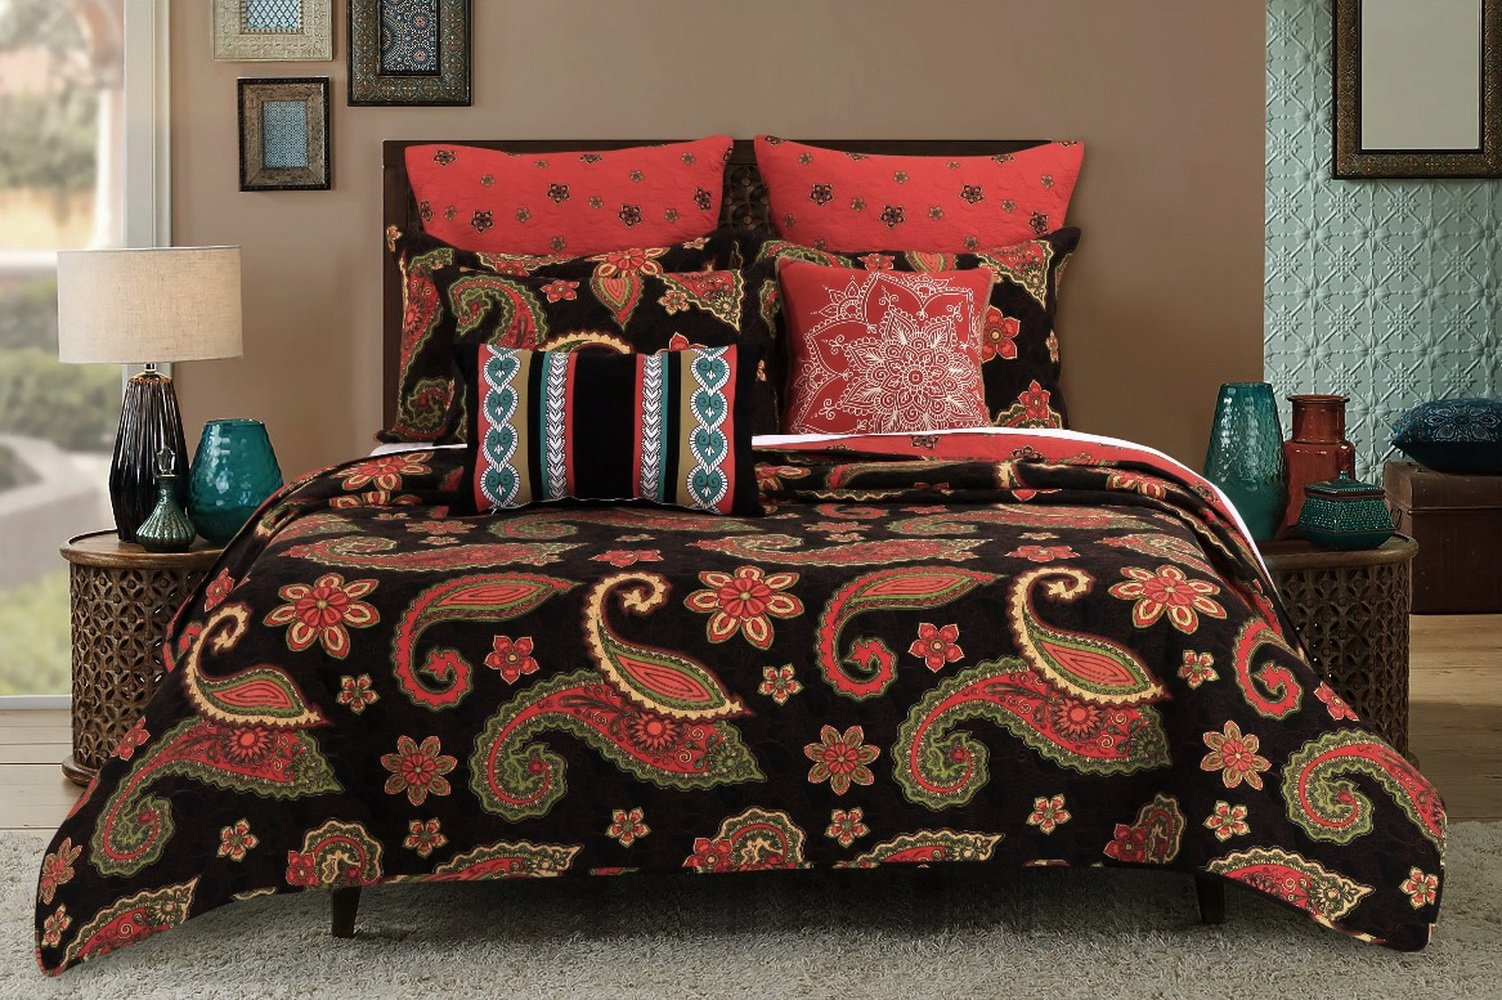 Vintage Retro Paisley Medallion Pattern Print Bedding Orange Yellow Charcoal Luxury Reversible 3 Piece Cotton Quilt Set with Shams King Size Size - Includes Bed Sheet Straps by Finely Stitched (Image #2)